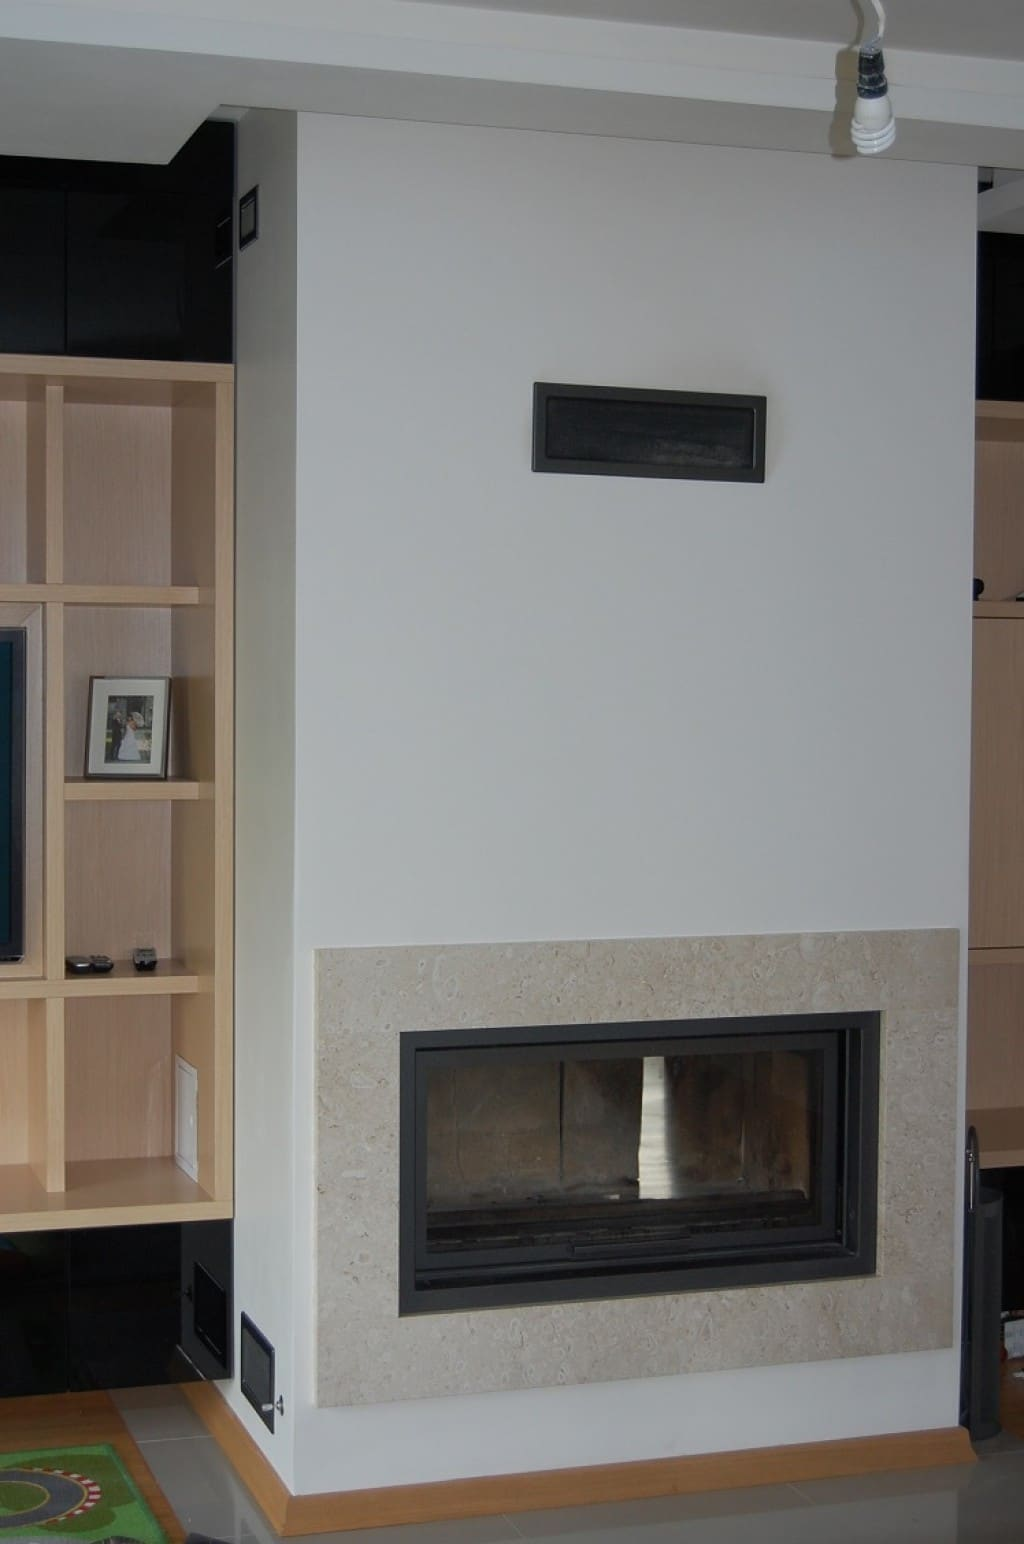 Blog - A panoramic fireplace